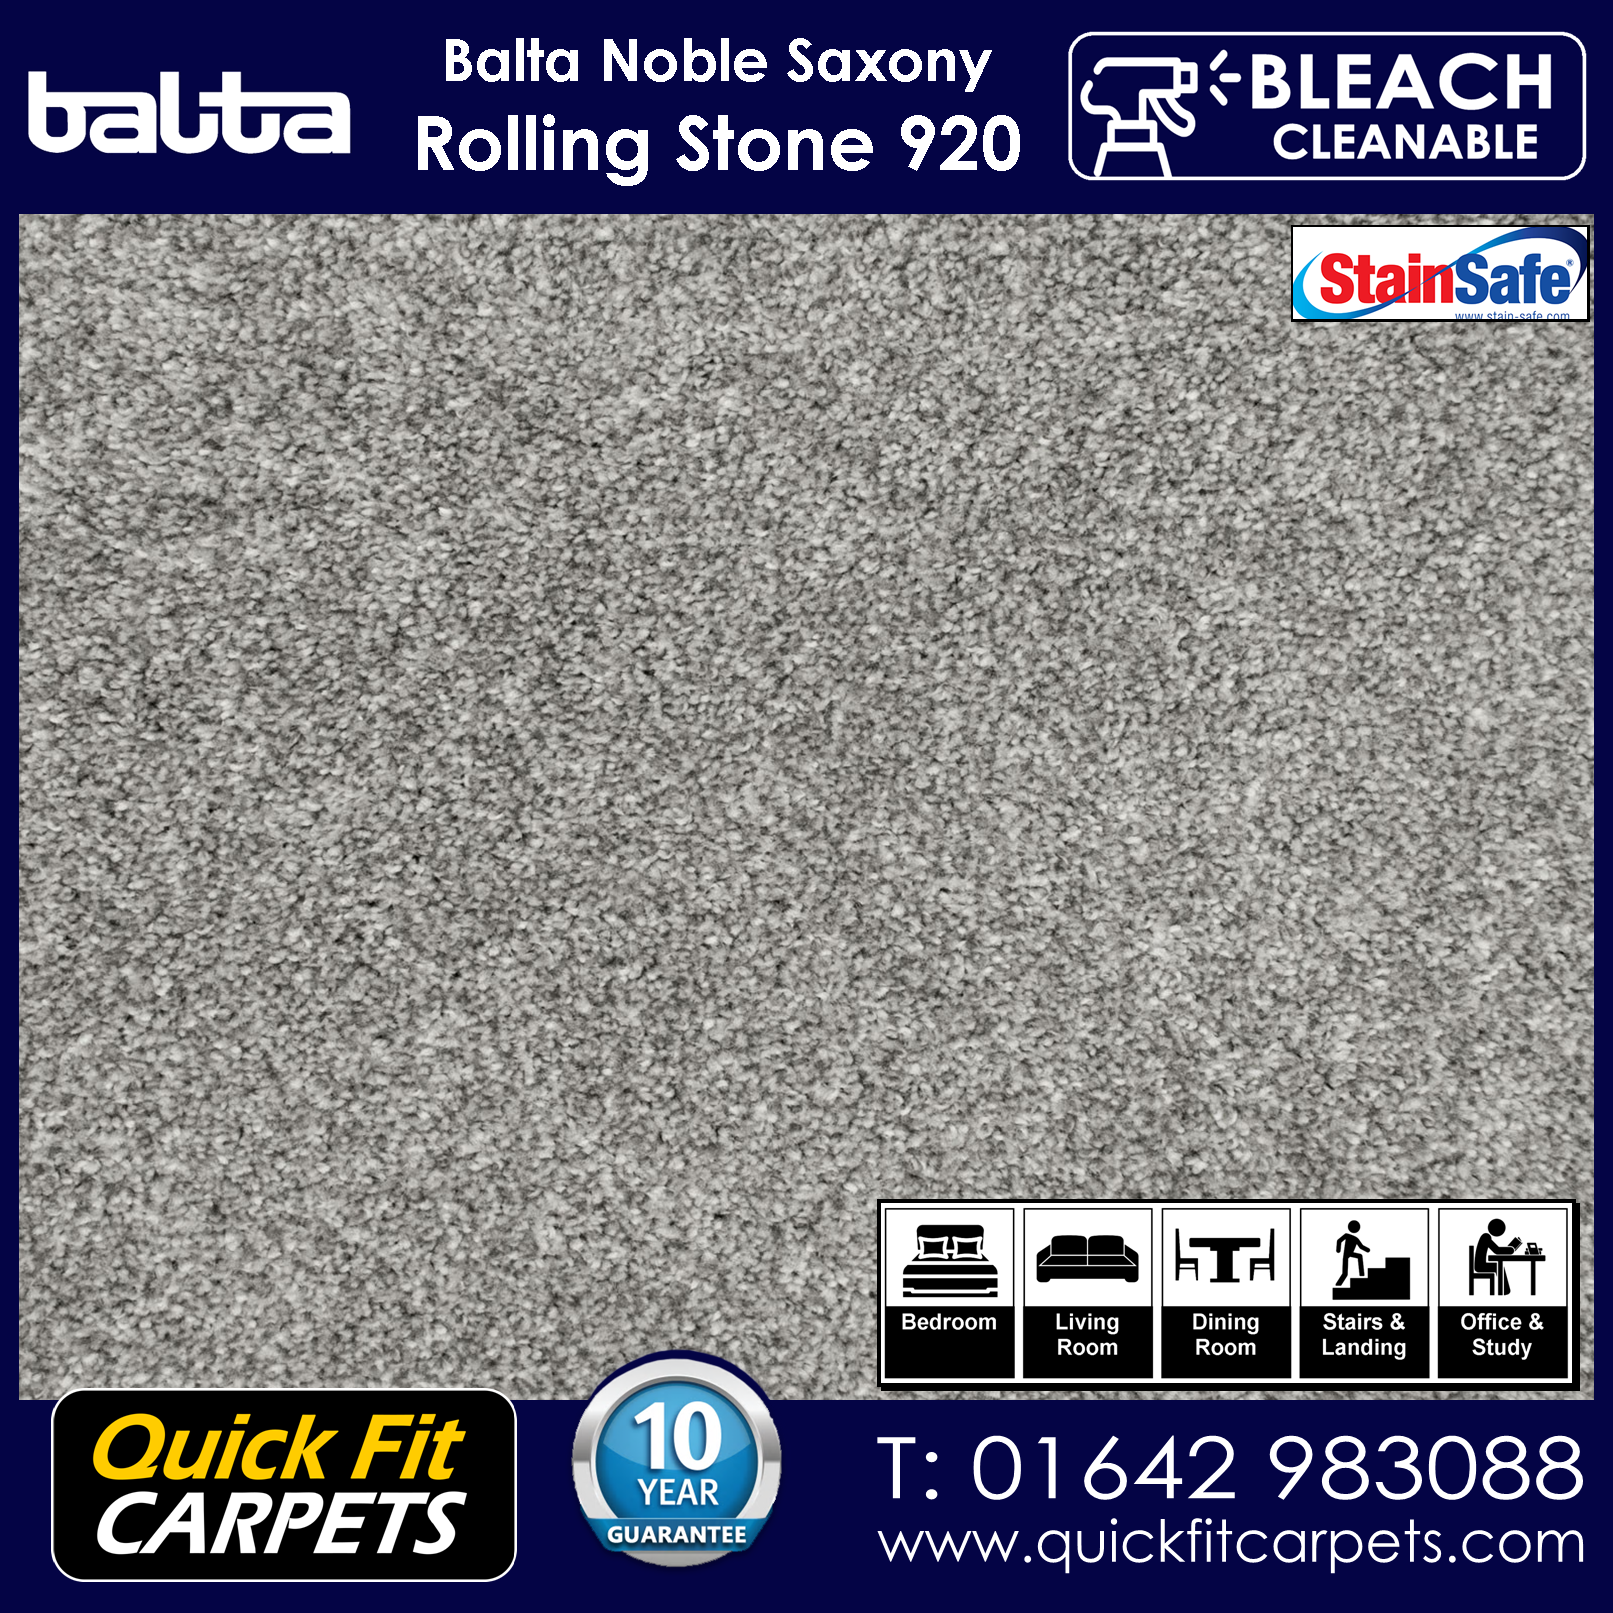 Quick Fit Carpets Balta Luxury Pile Rolling Stone 920